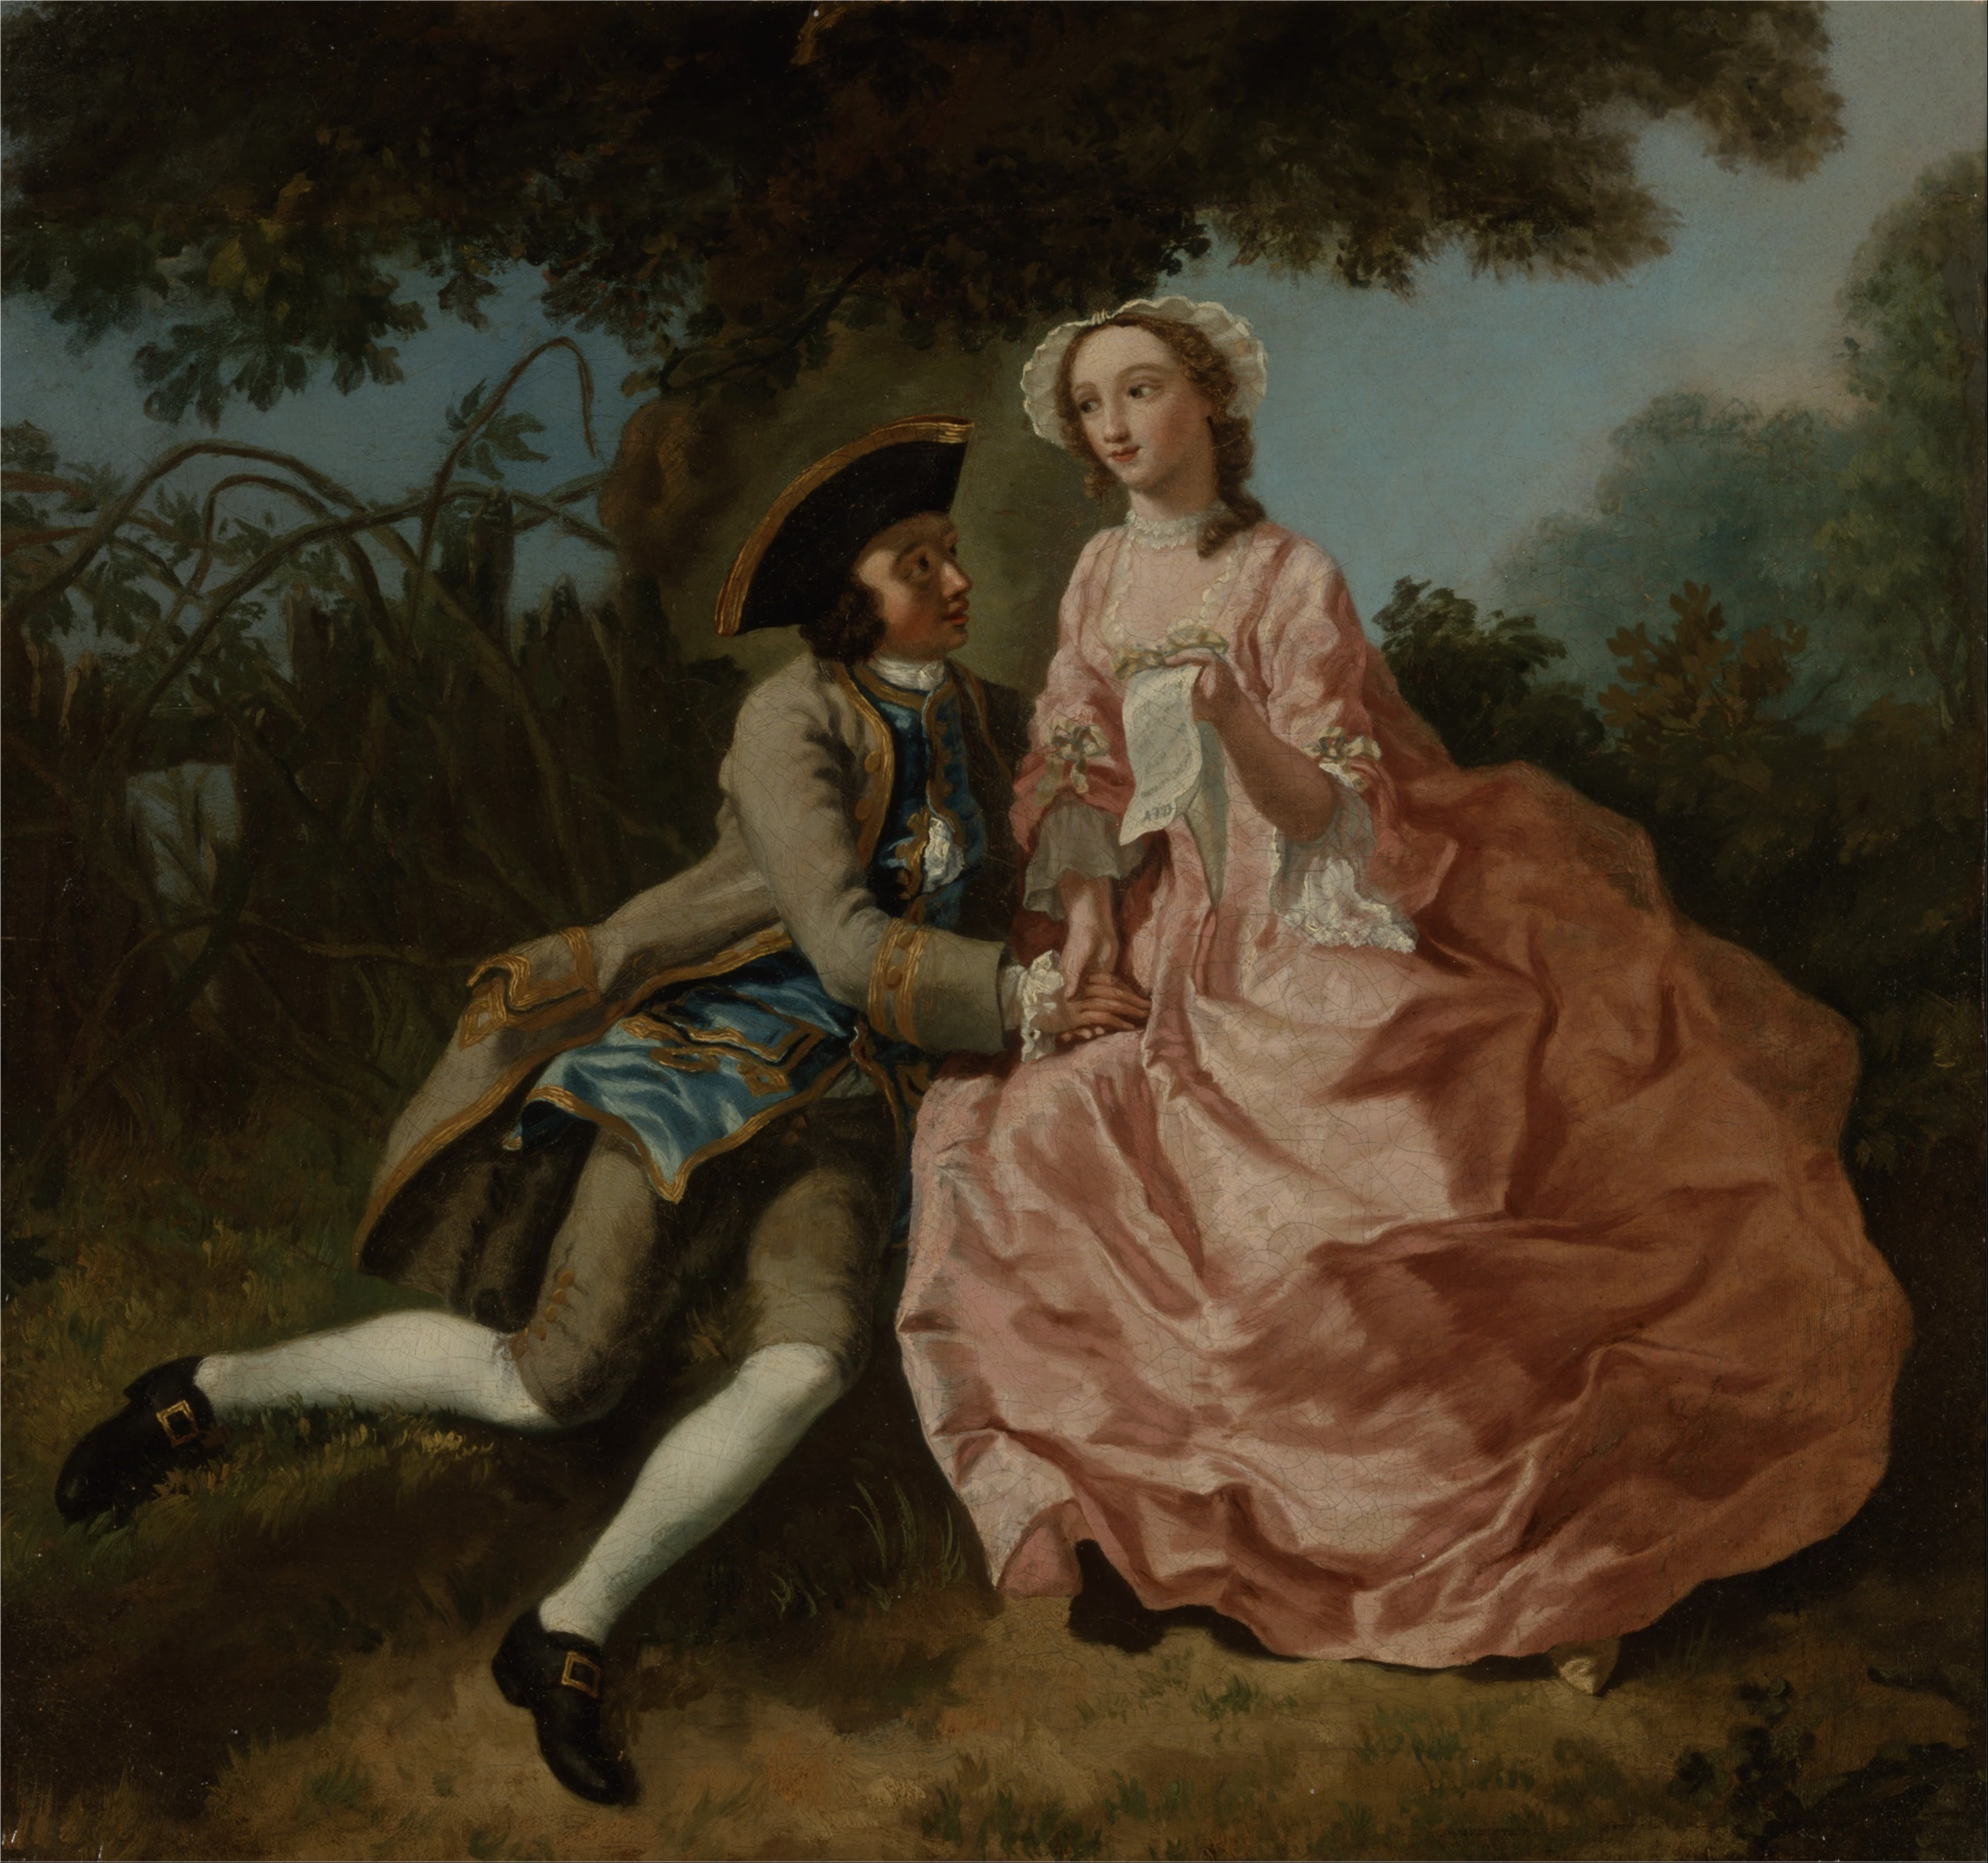 'Cracking on' in the Eighteenth Century: Conduct Books and Courtship